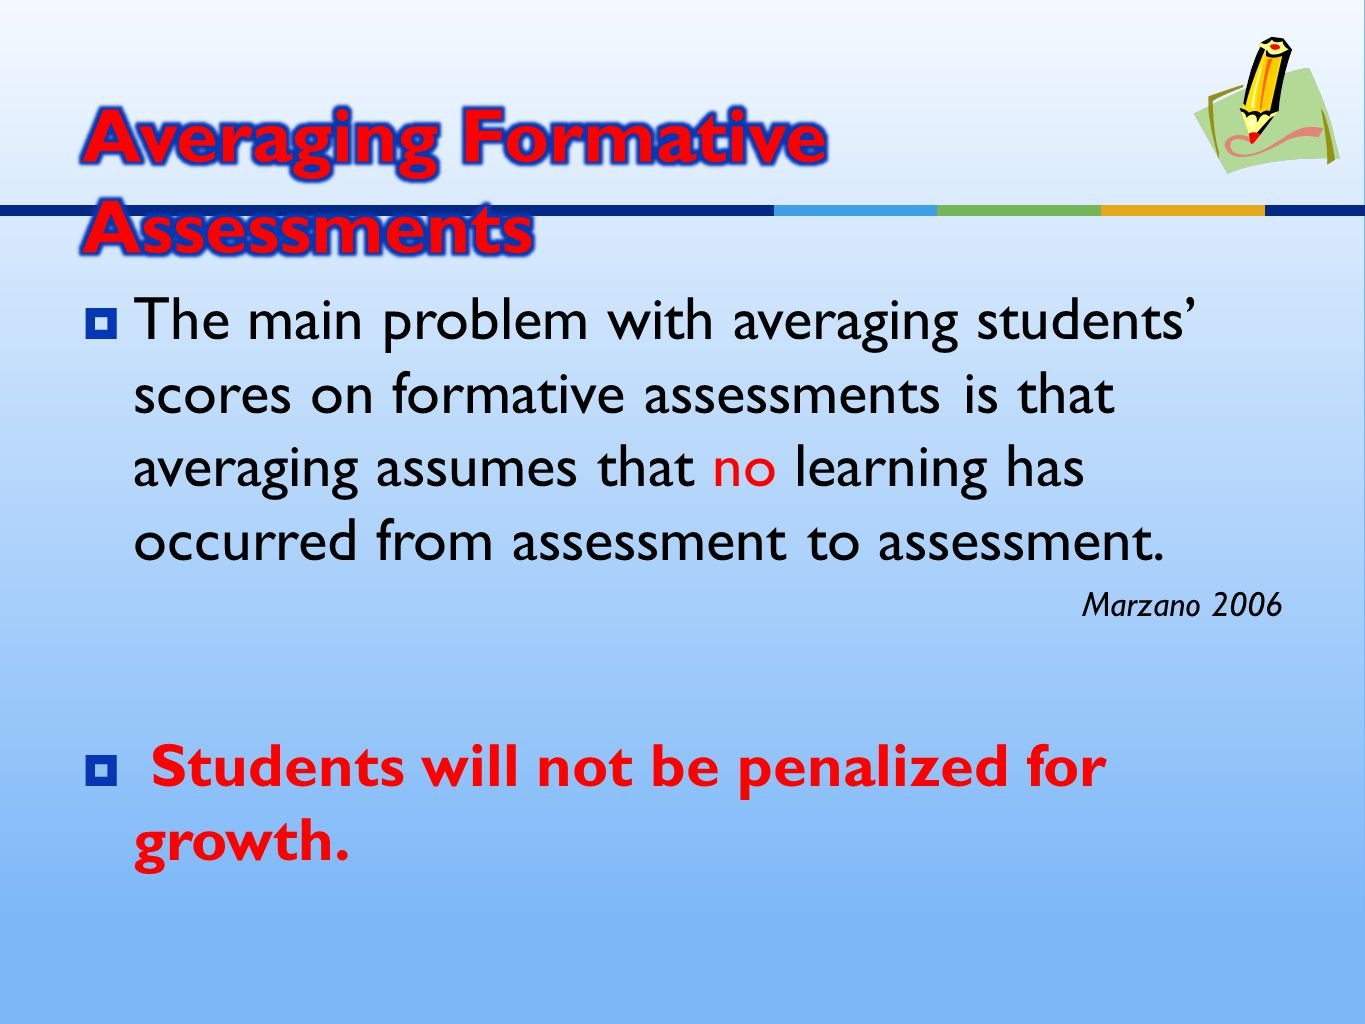  The main problem with averaging students' scores on formative assessments is that averaging assumes that no learning has occurred from assessment to assessment.